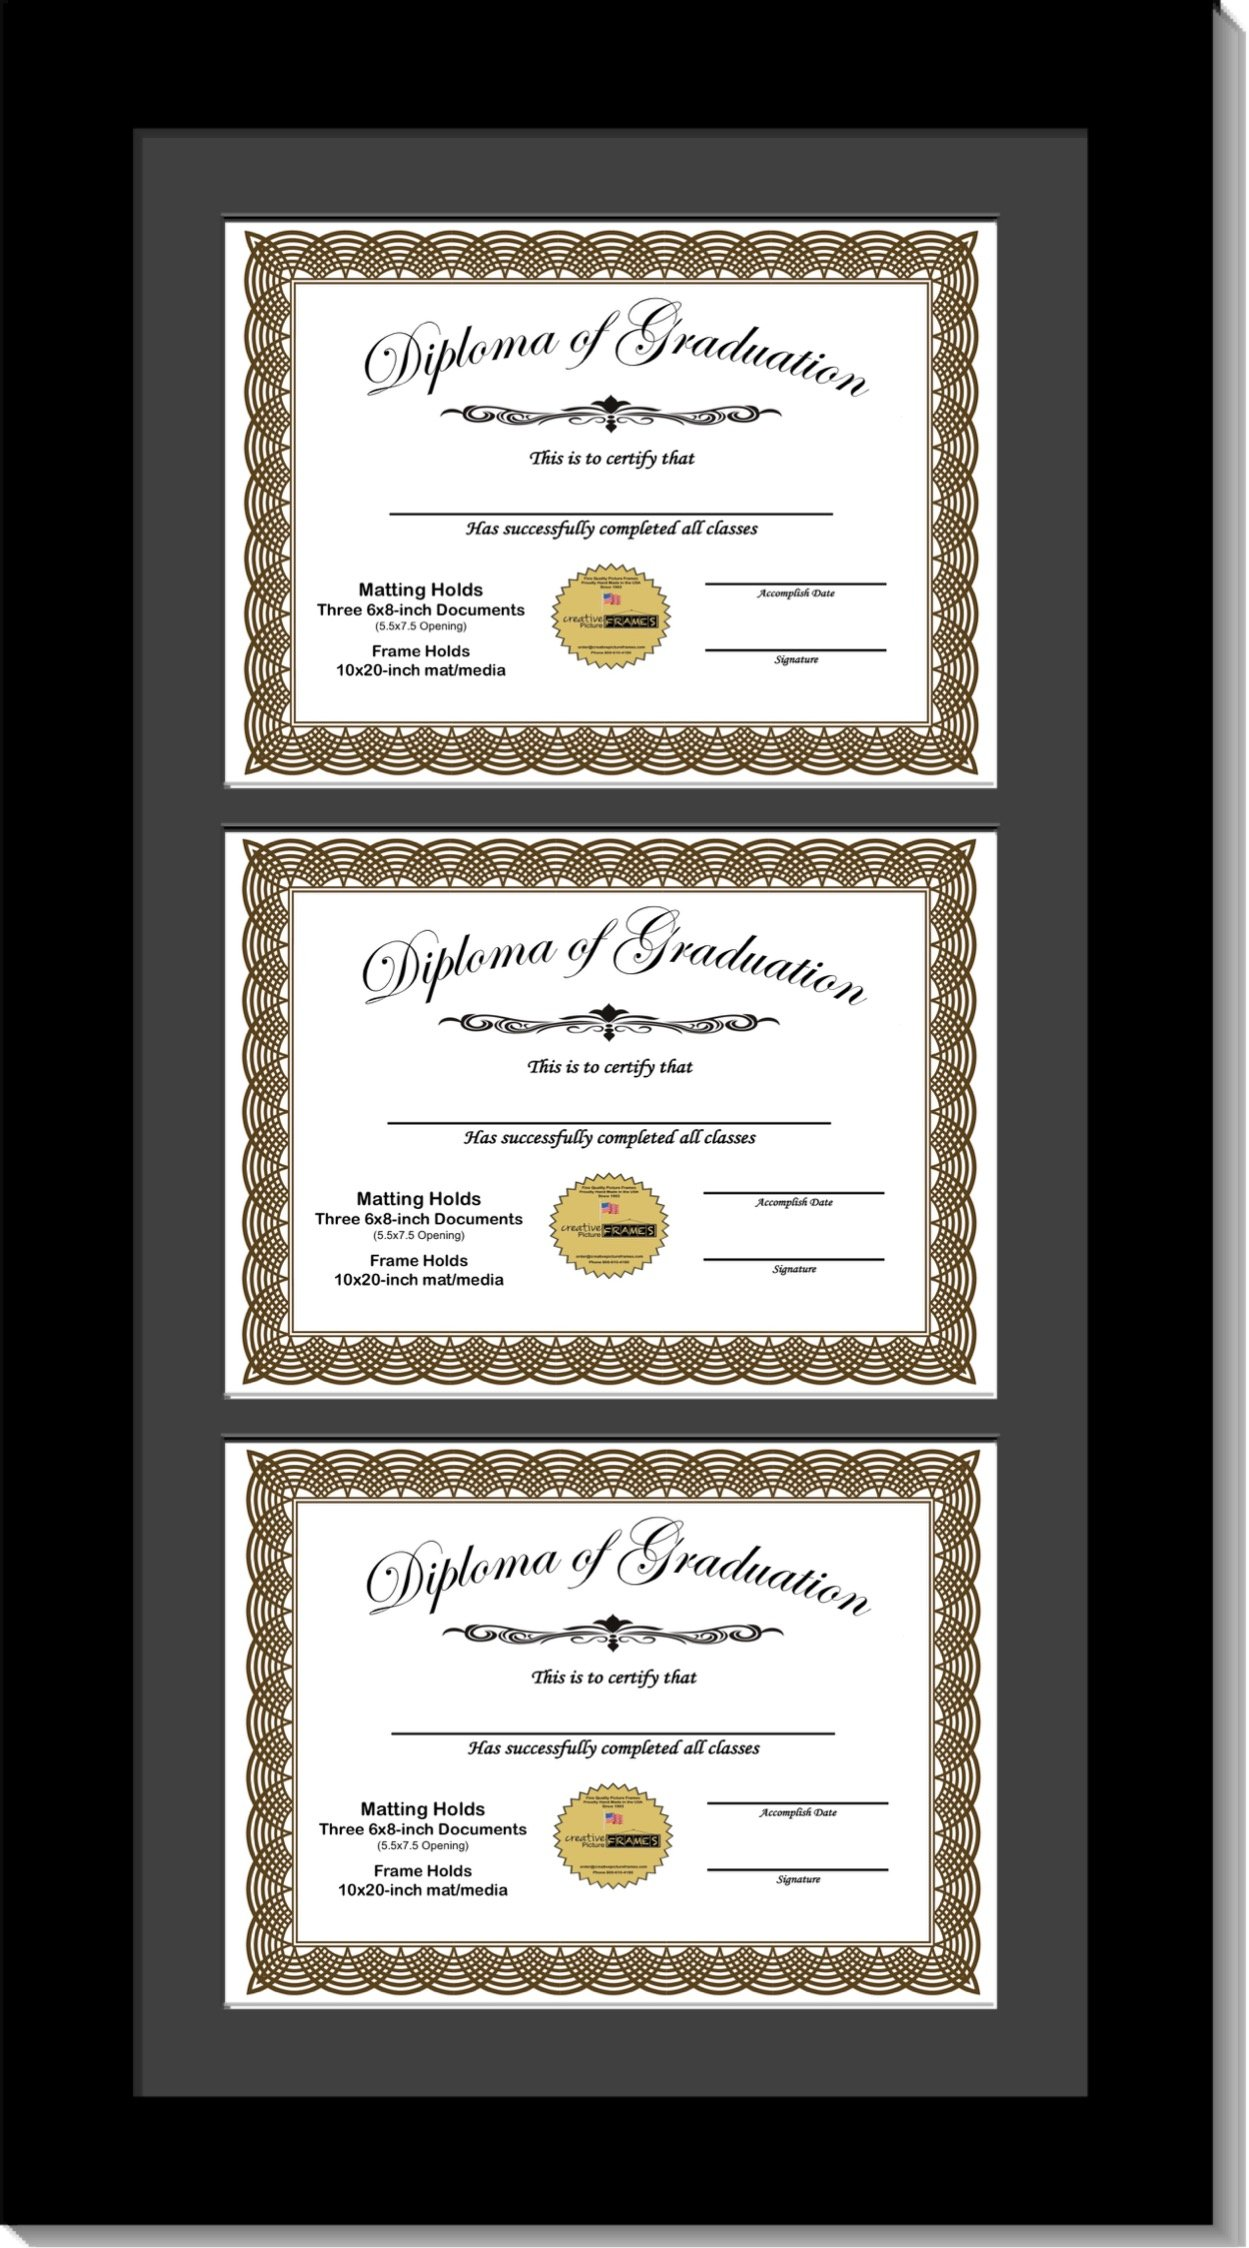 CreativePF [6x8-3-10x20bk-b] Black Triple Diploma Frame with 3 Opening Black Matting | Holds 3-6x8-inch Documents with Installed Wall Hanger